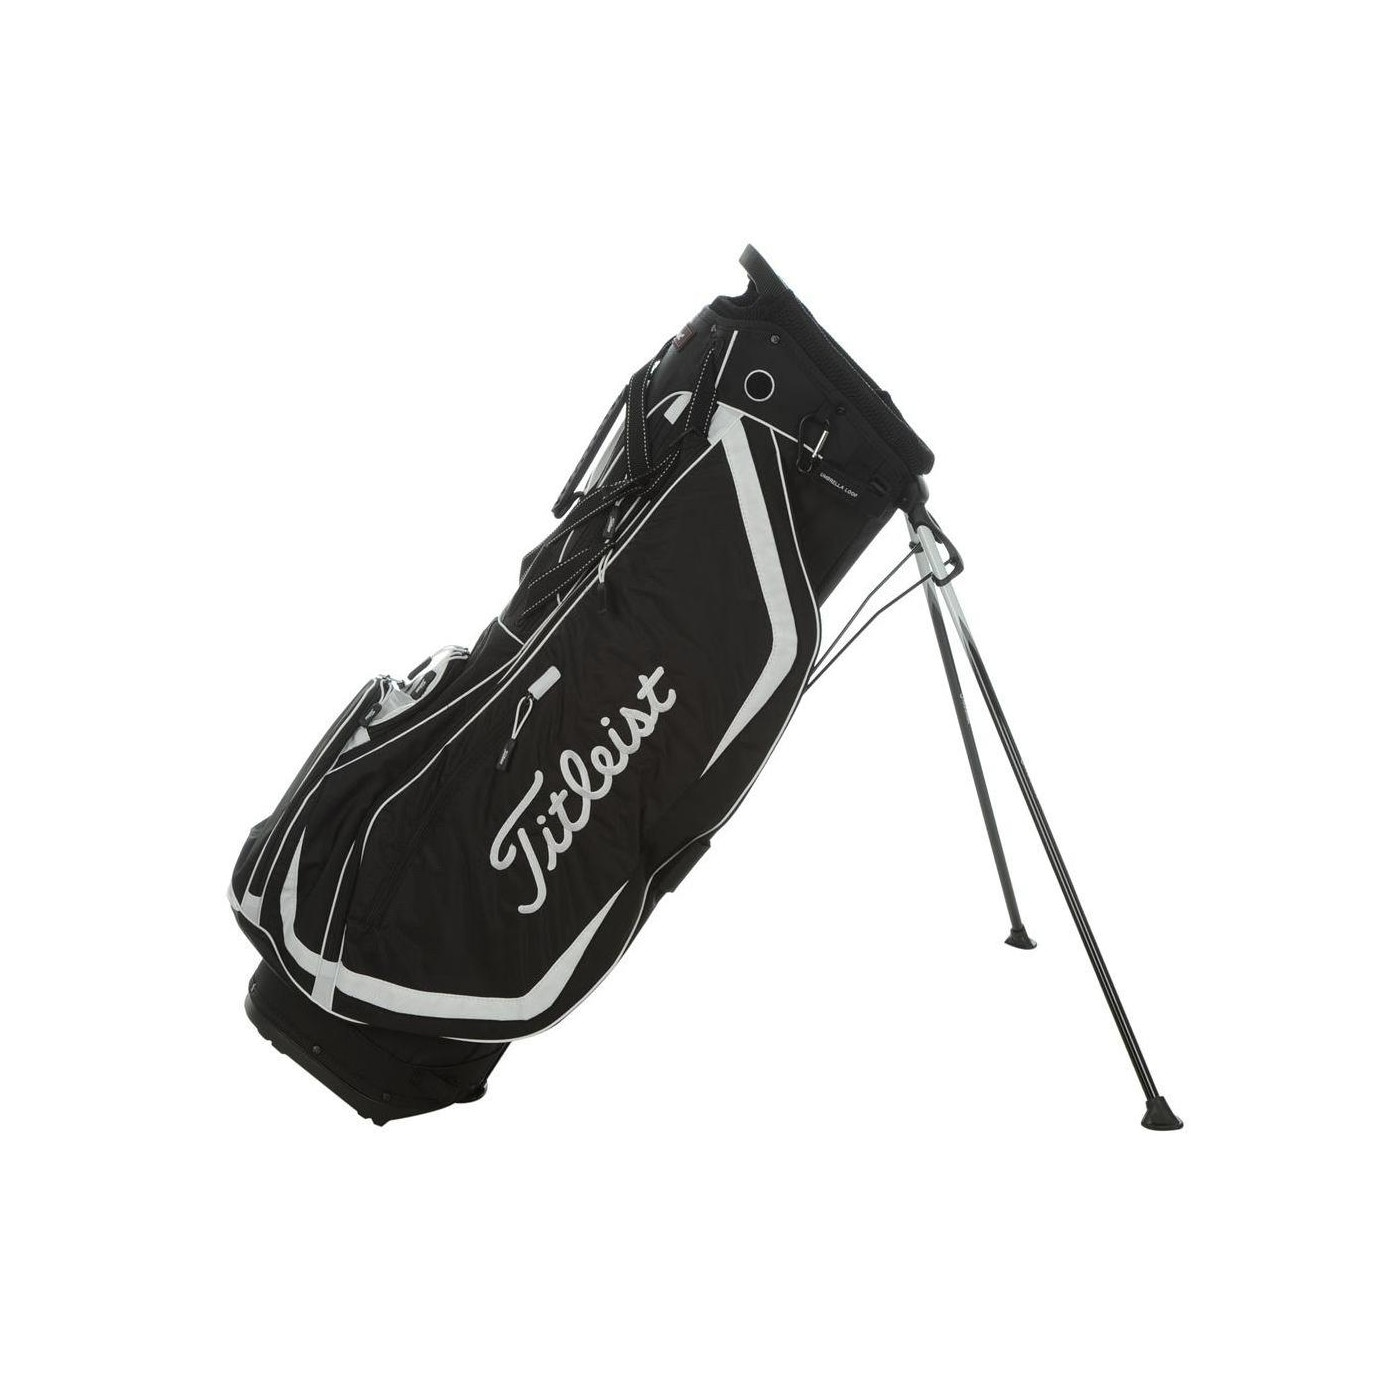 TaylorMade 2.0 Stand Bag